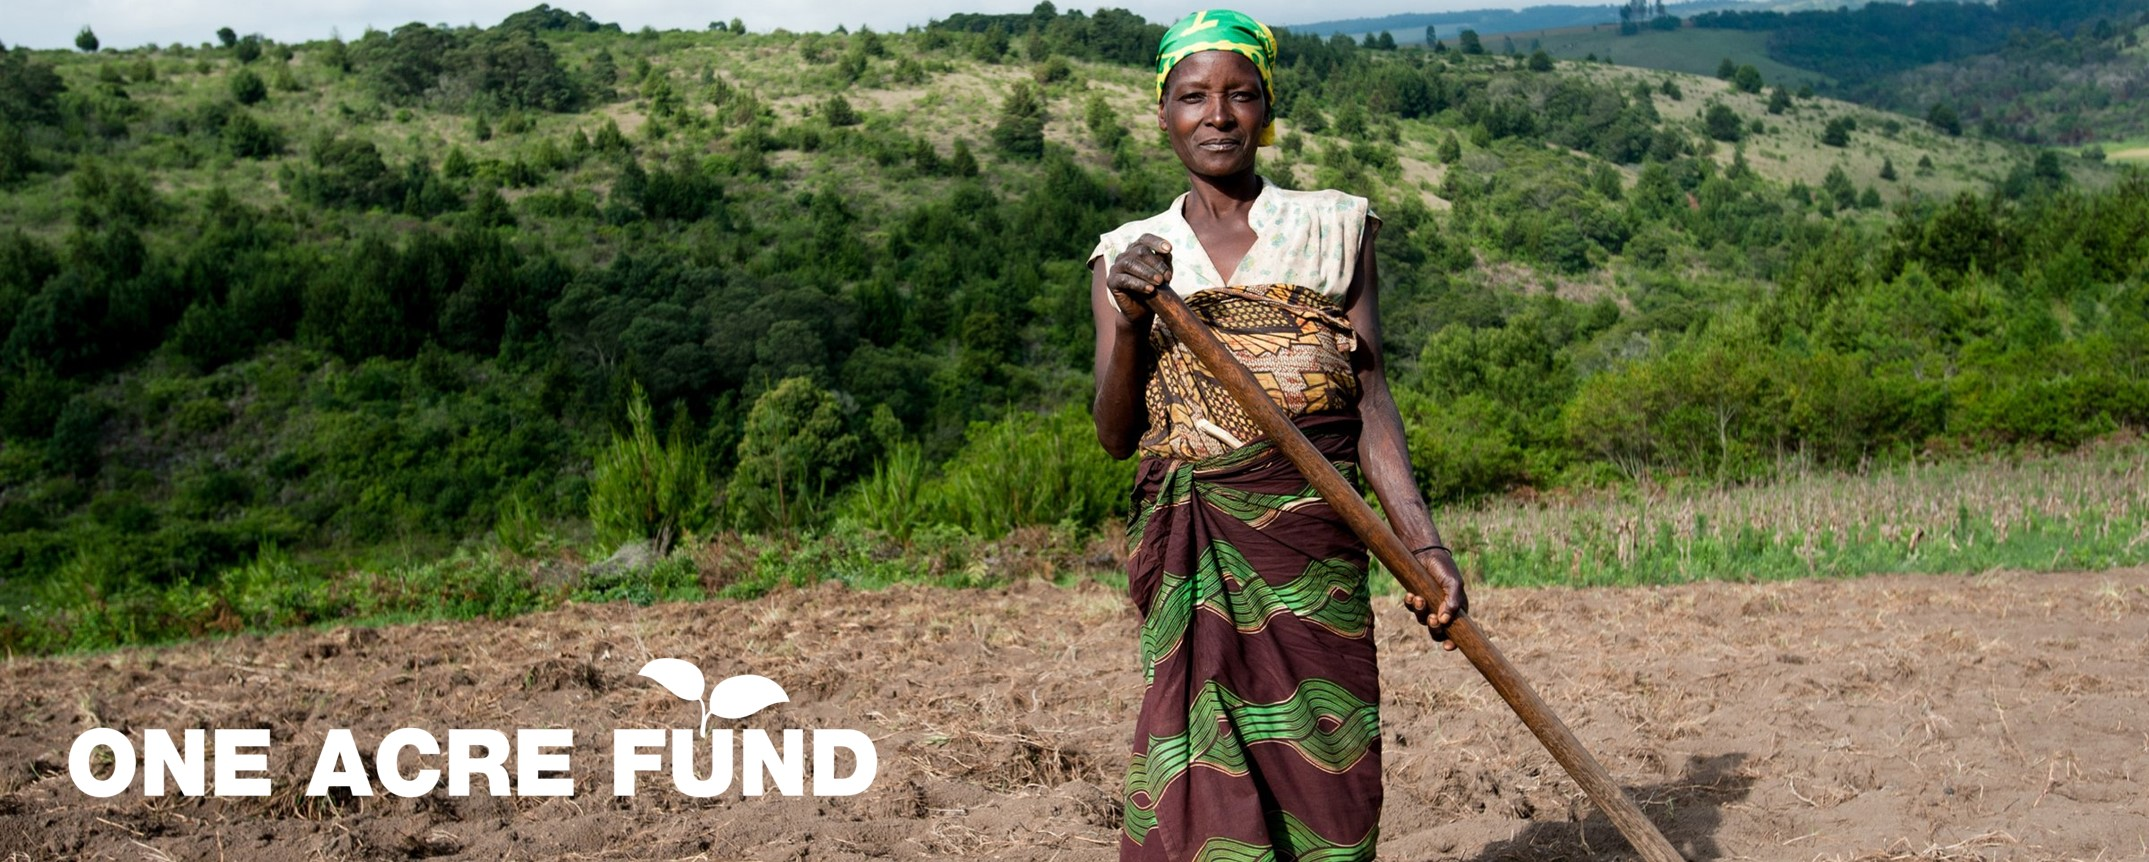 One Acre Fund - Associate Opportunity Movemeback African opportunity cover image